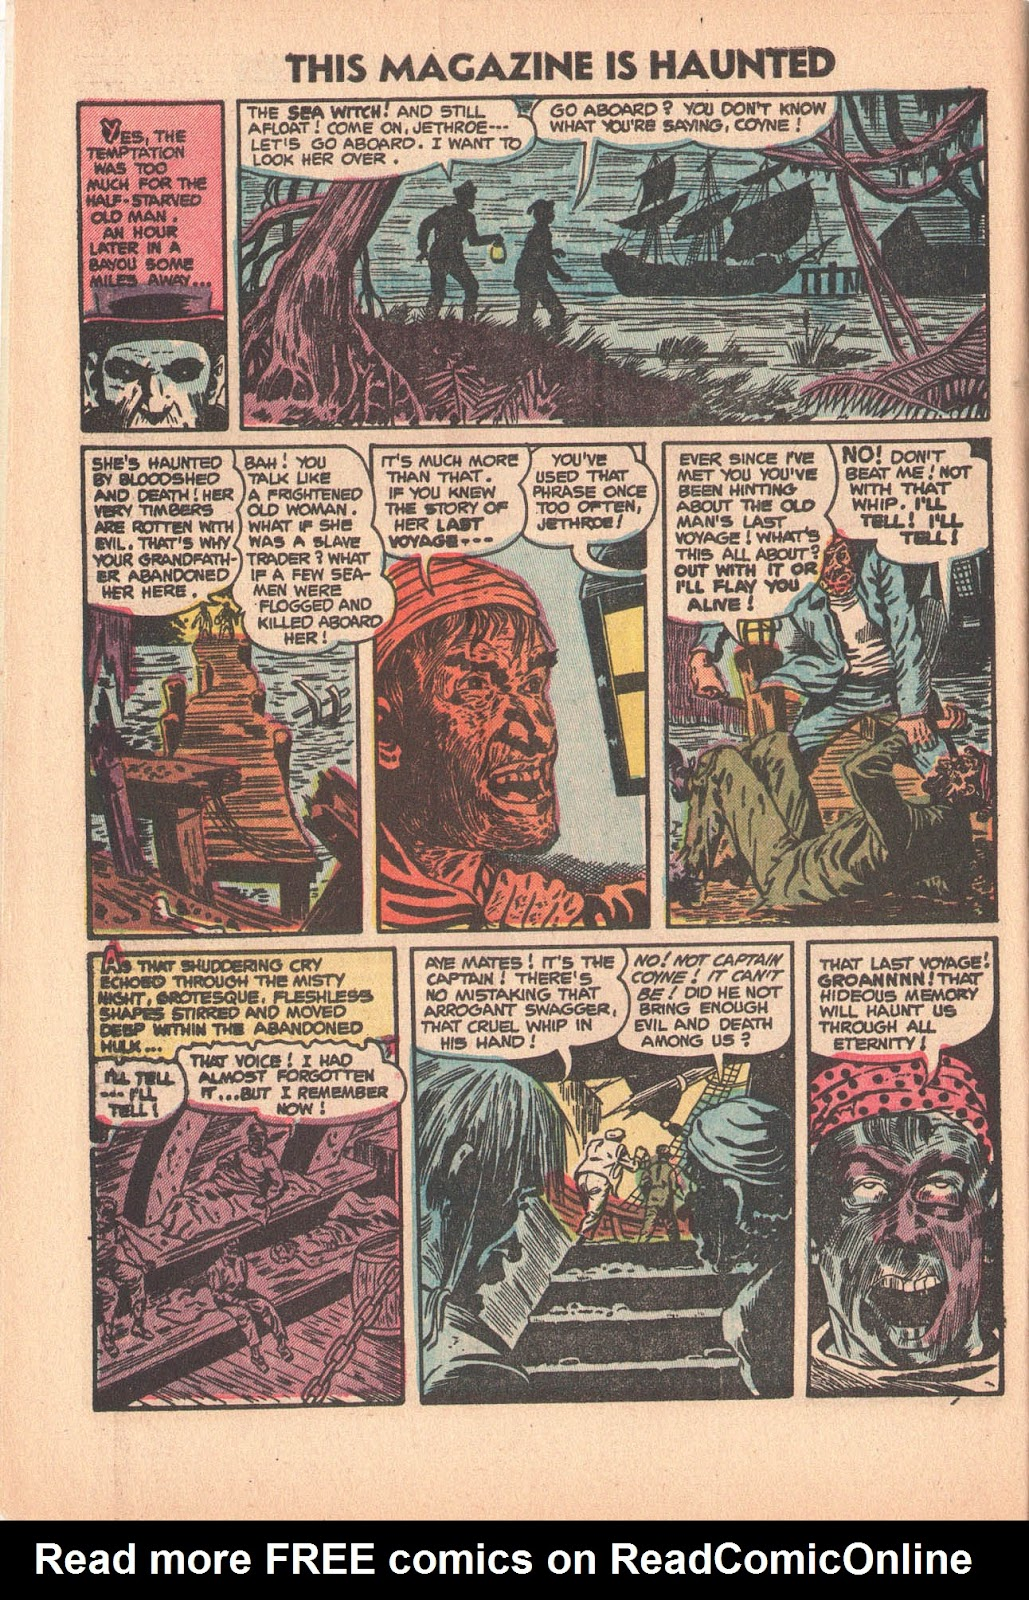 Read online This Magazine Is Haunted comic -  Issue #16 - 6